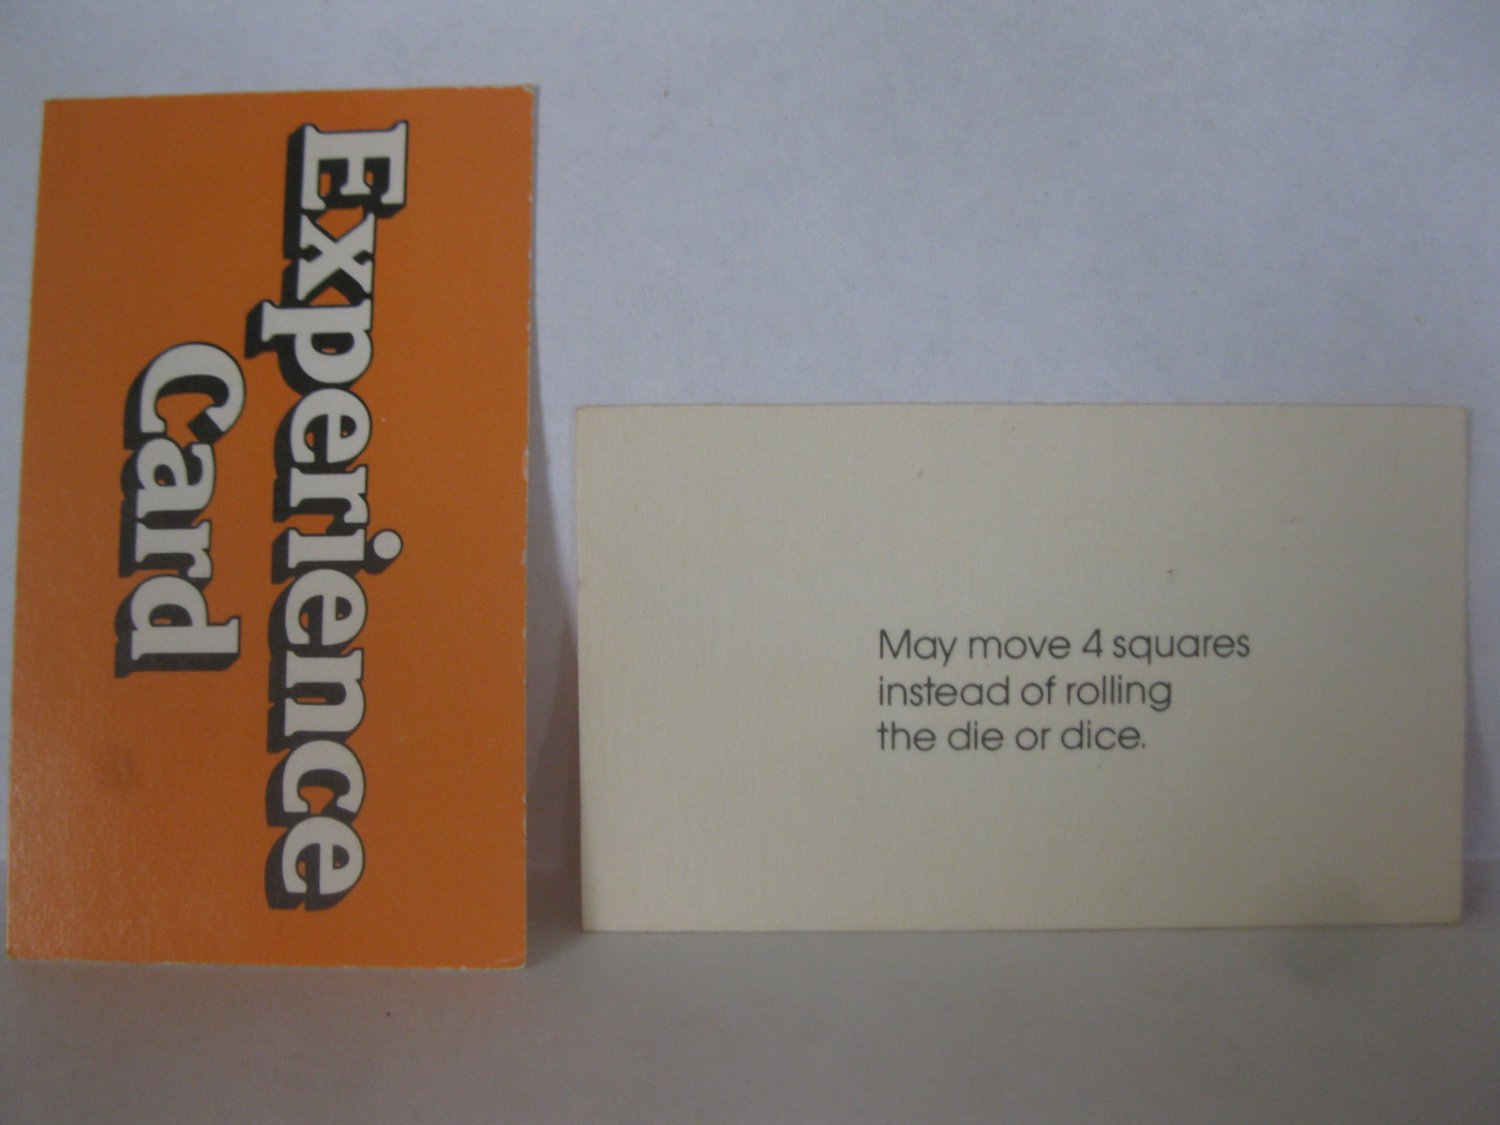 1979 Careers Board Game Piece: Experience Card - Move 4 Squares